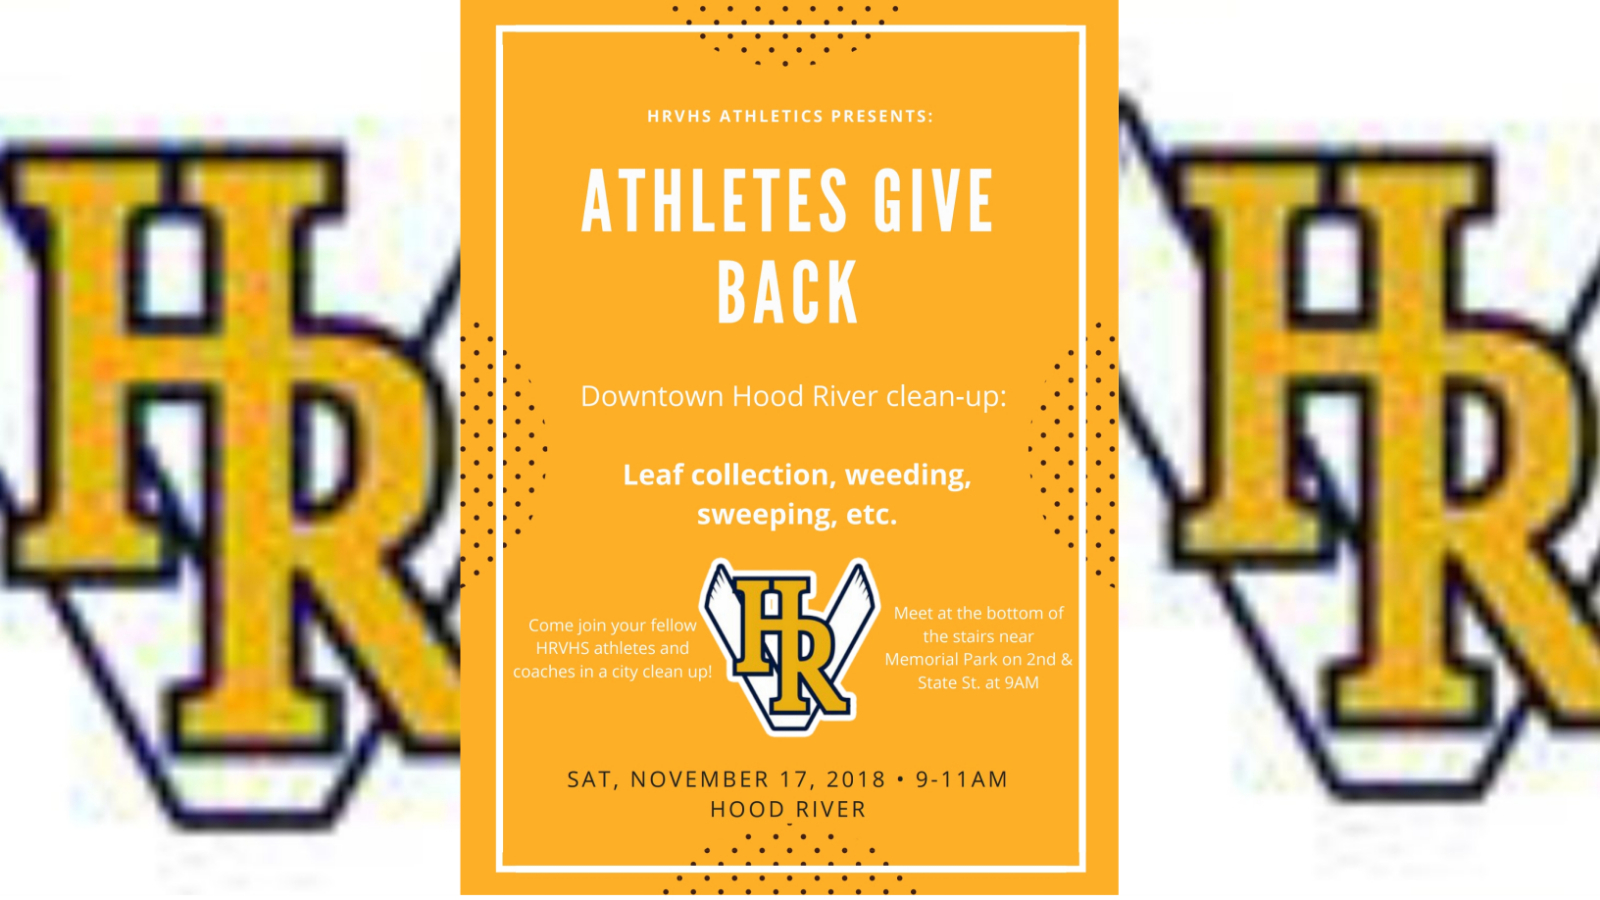 Athletes Give Back event – Nov. 17